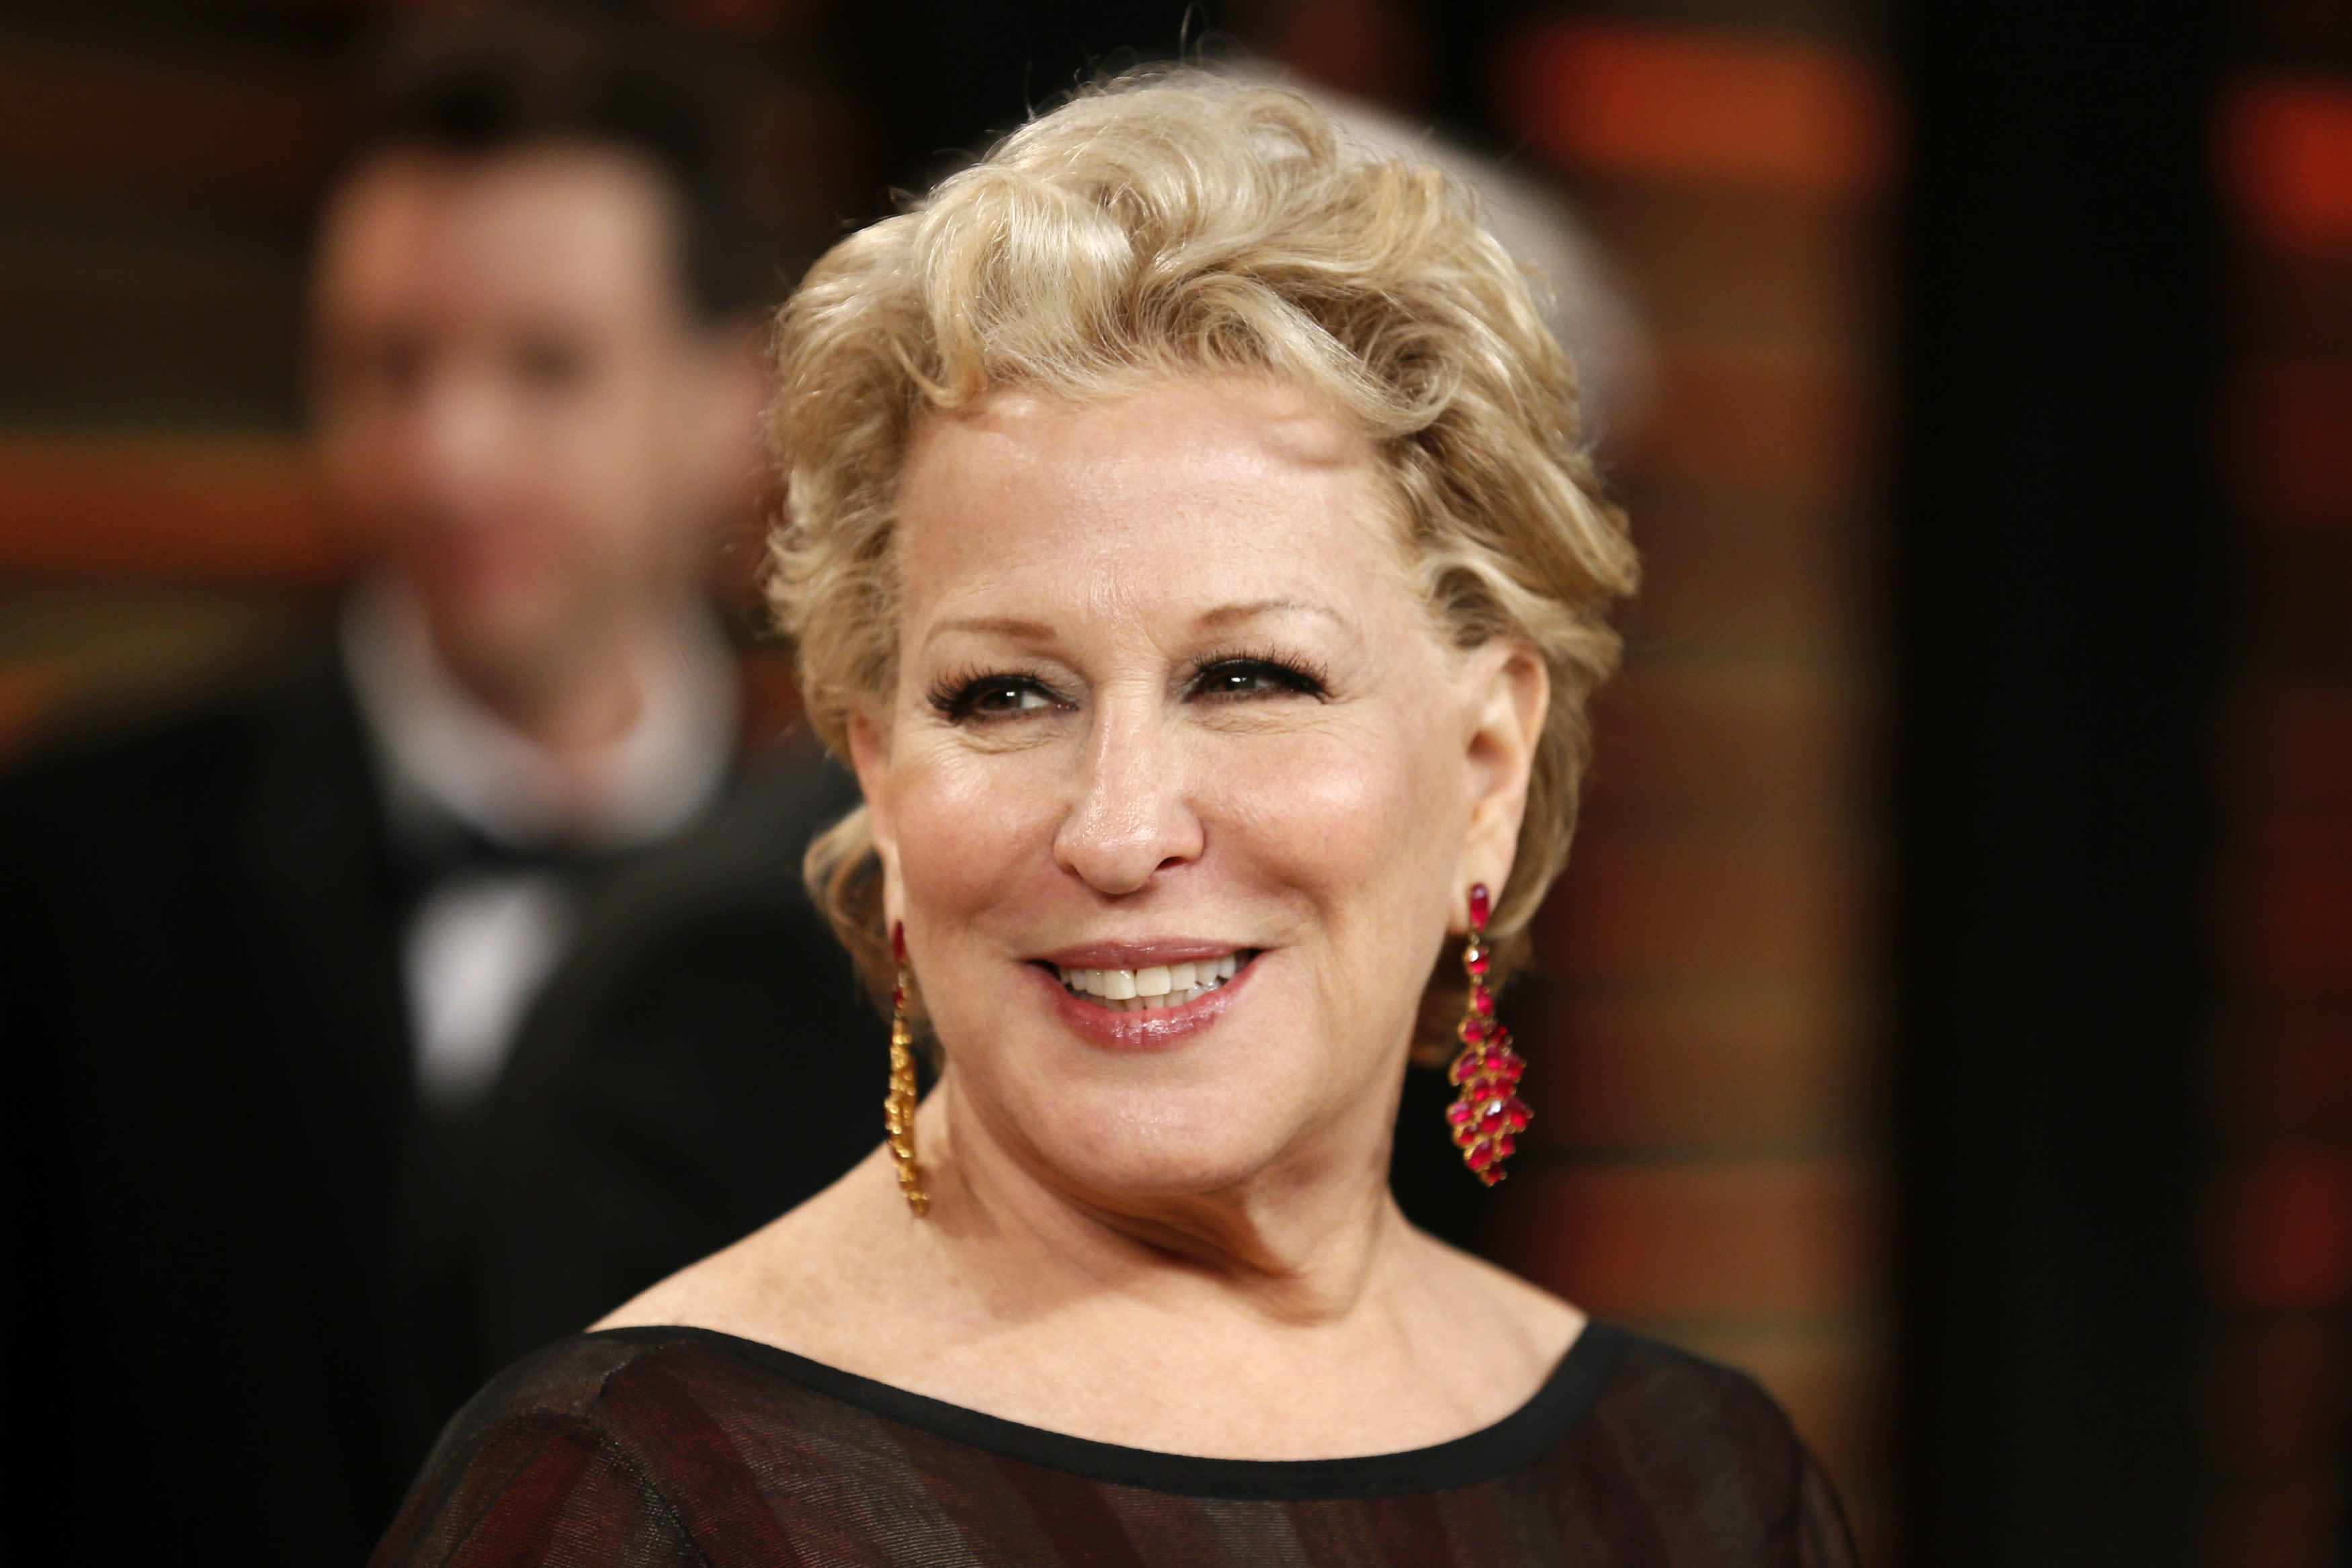 Bette Midler mocks Lori Loughlin's college admissions scandal: 'The judge might put her away for ... hours'